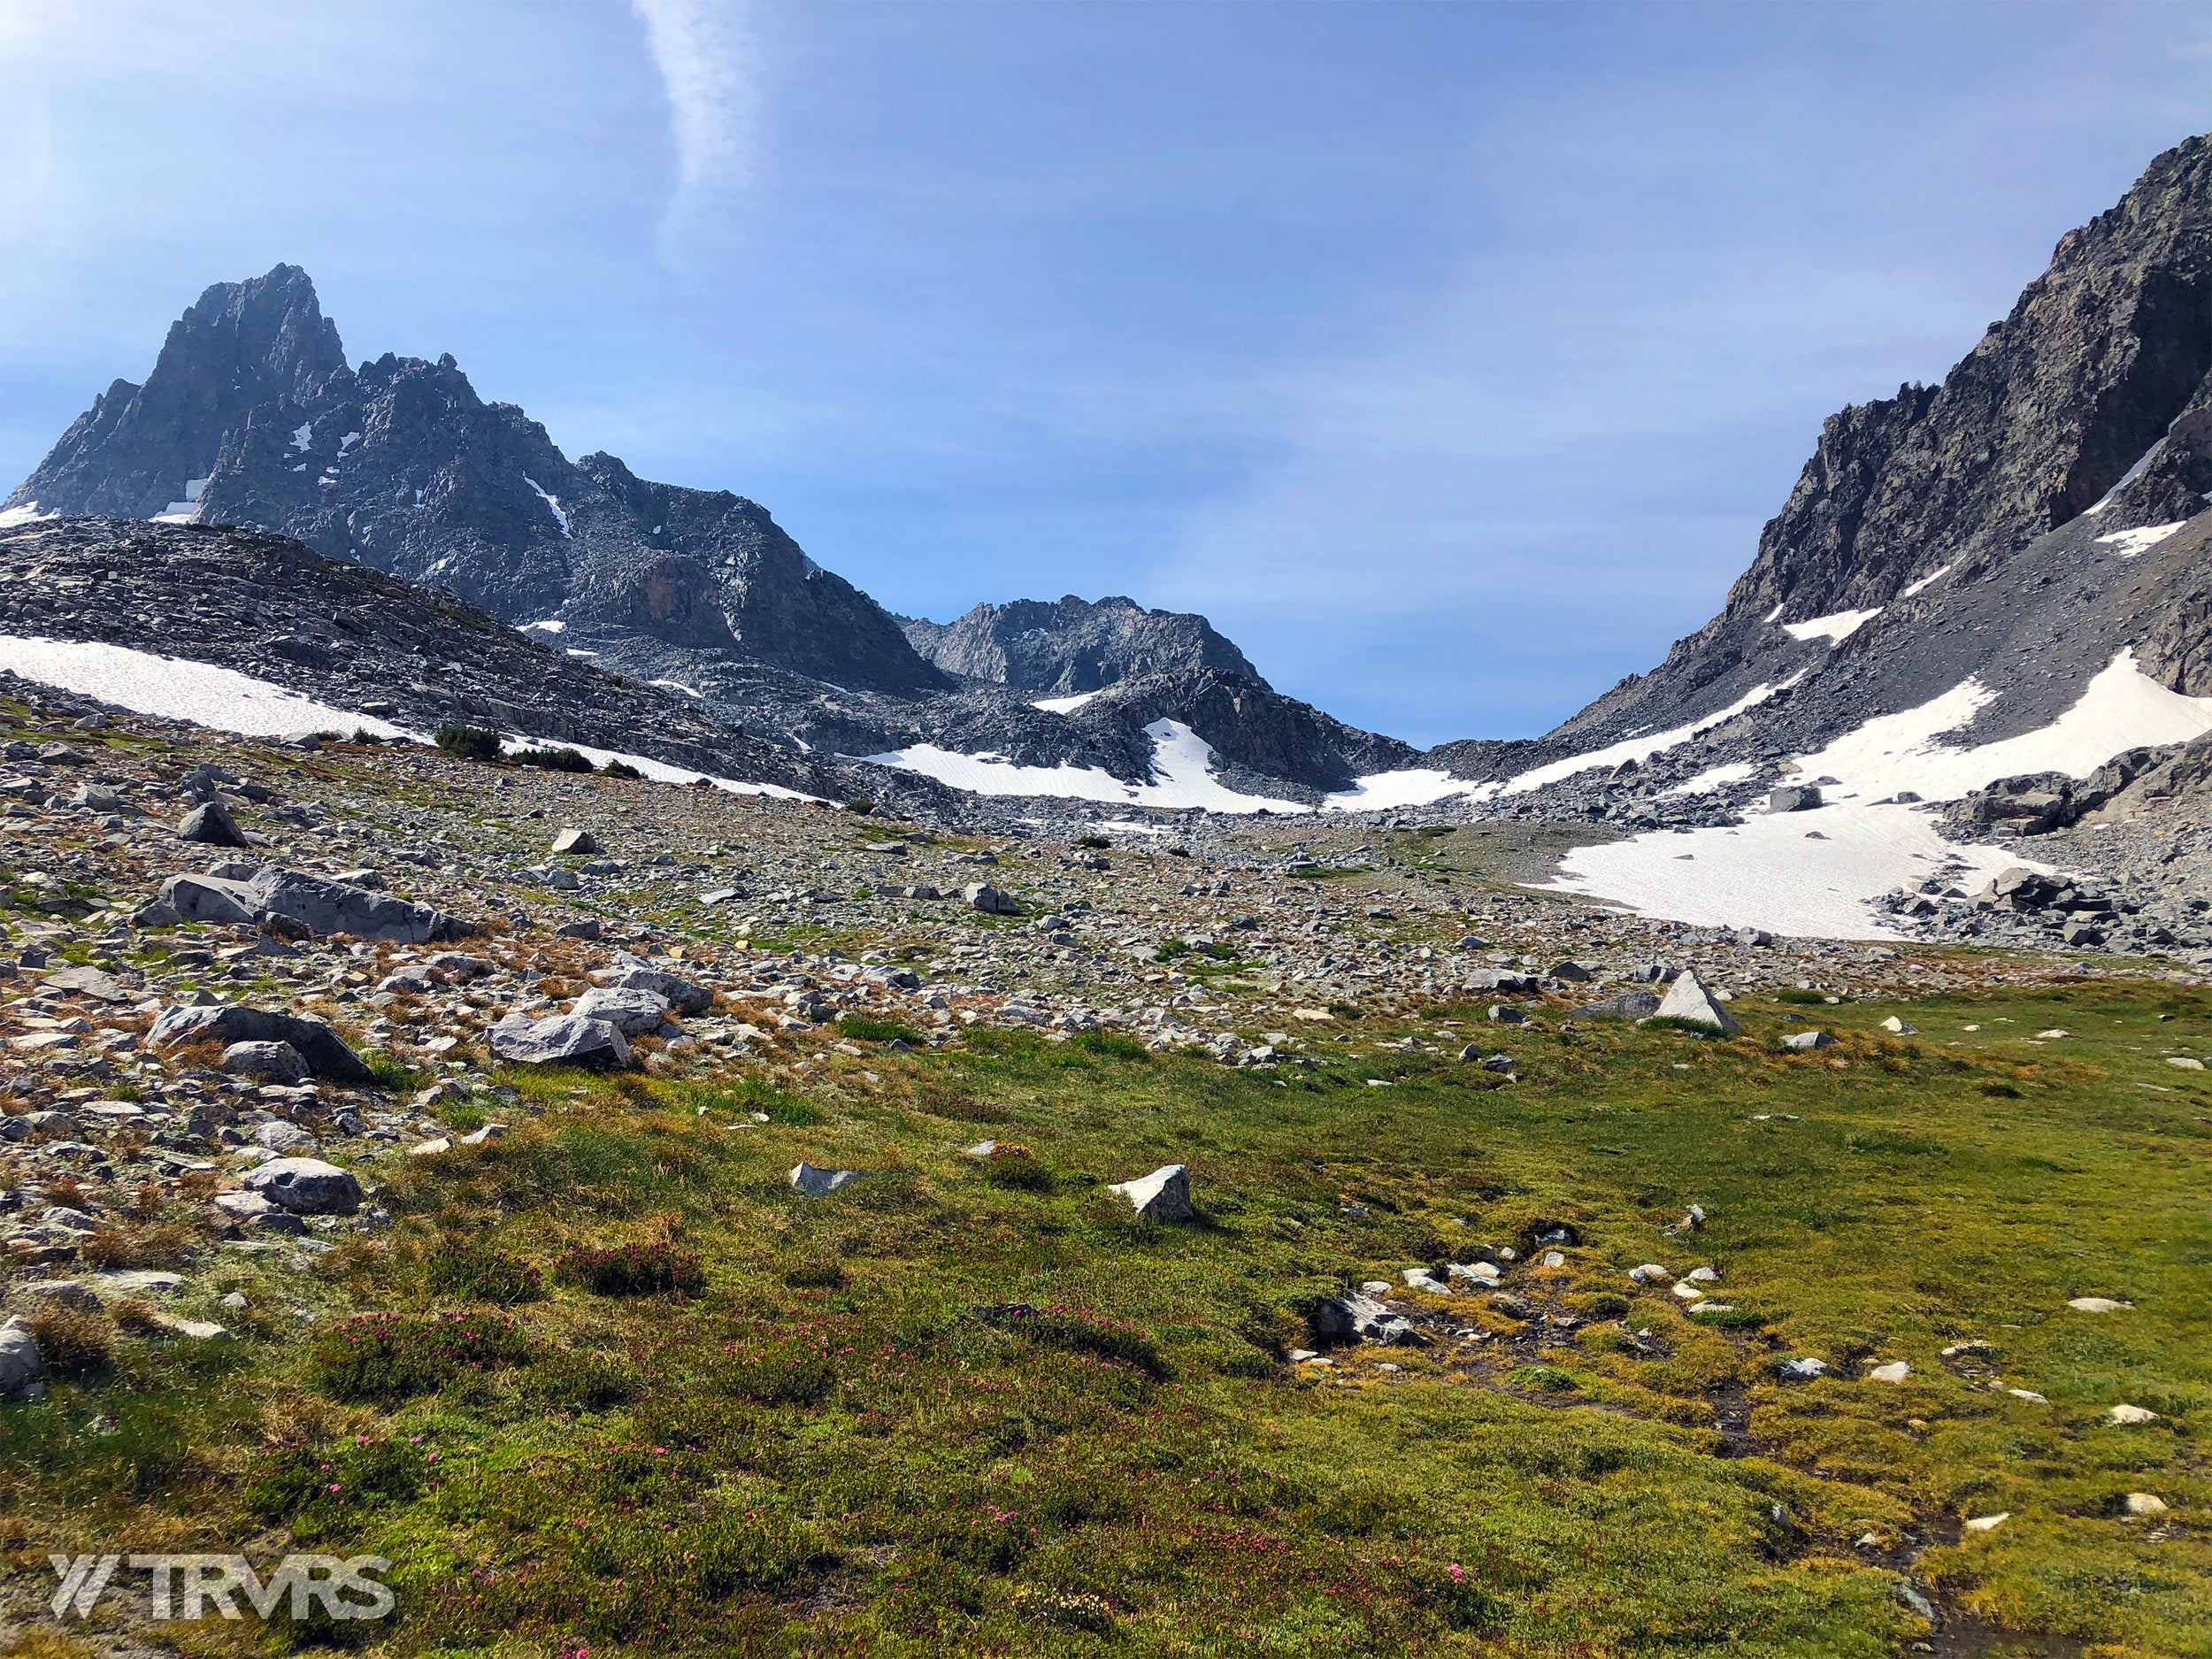 Approaching Glacier Pass- Banner Peak, Ritter-Banner Saddle, Lake Catherine, Glacier Pass, Thousand Island Lake, River Trail, Pacific Crest Trail, Middle Fork, Agnew Meadow, Ansel Adams Wilderness, Mammoth Lakes, Sierra Nevada | TRVRS Apparel